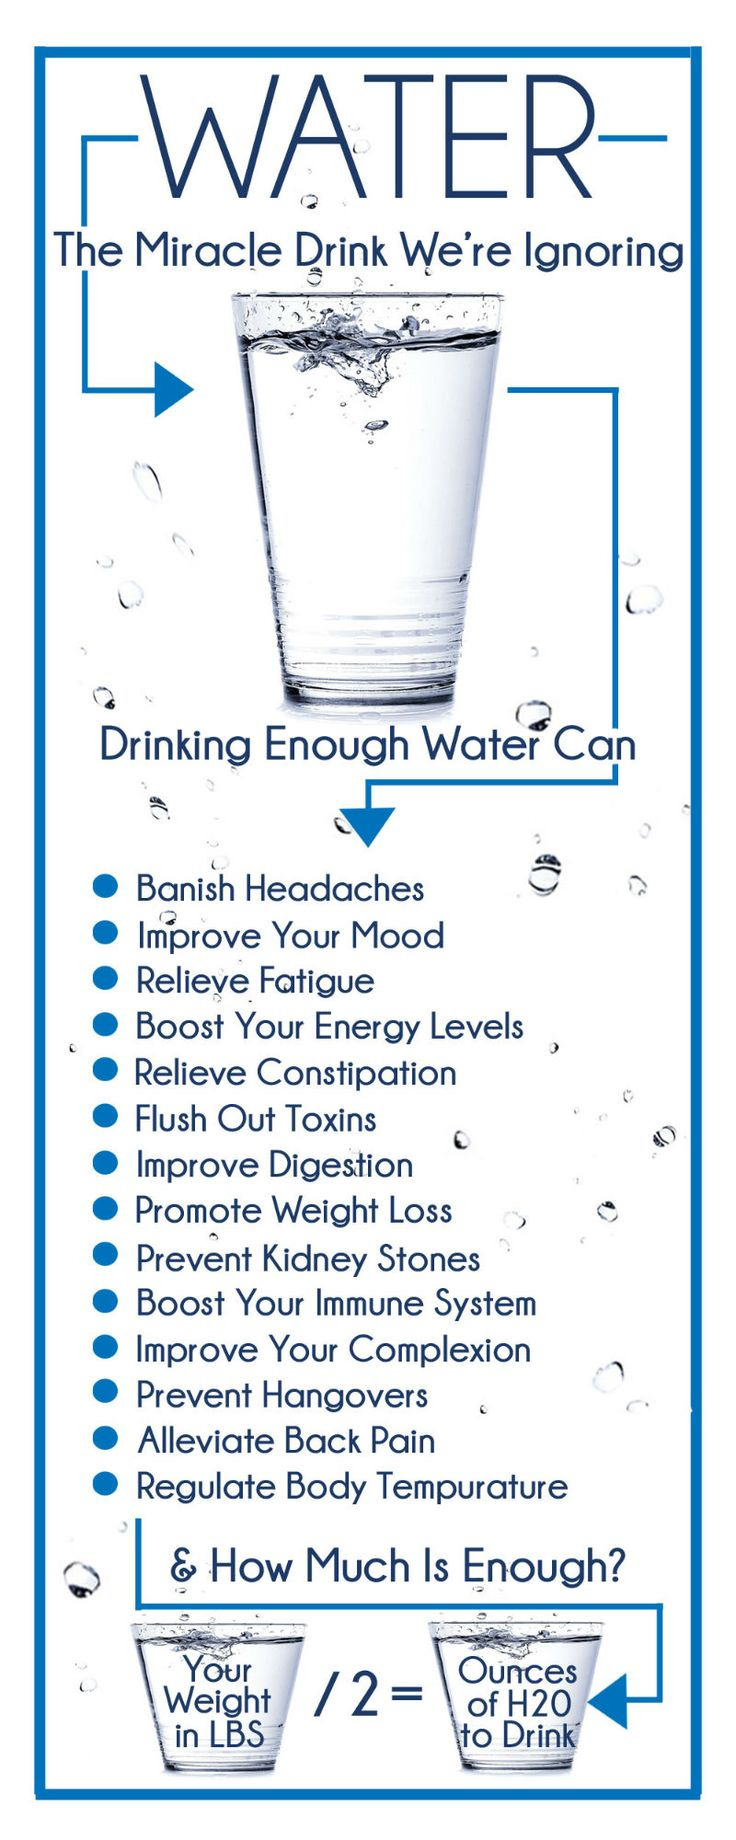 Water: The Miracle Drink We Often Overlook Infographic